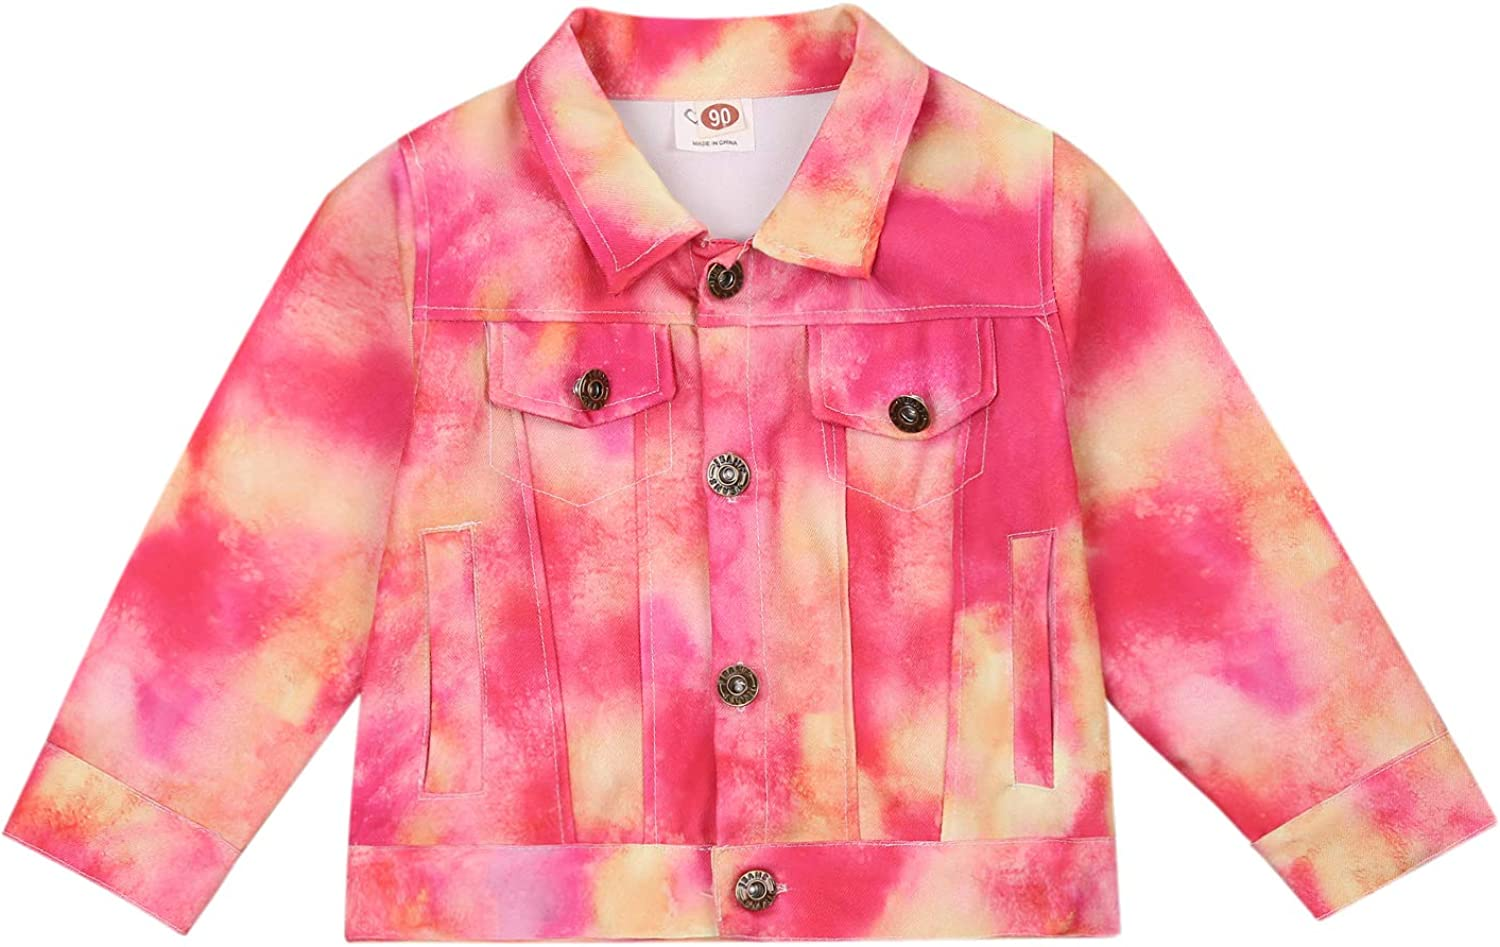 Rare Baby Tie dye Jacket Girls' Fall Outfit L Jackets Outerwear Denim Max 59% OFF